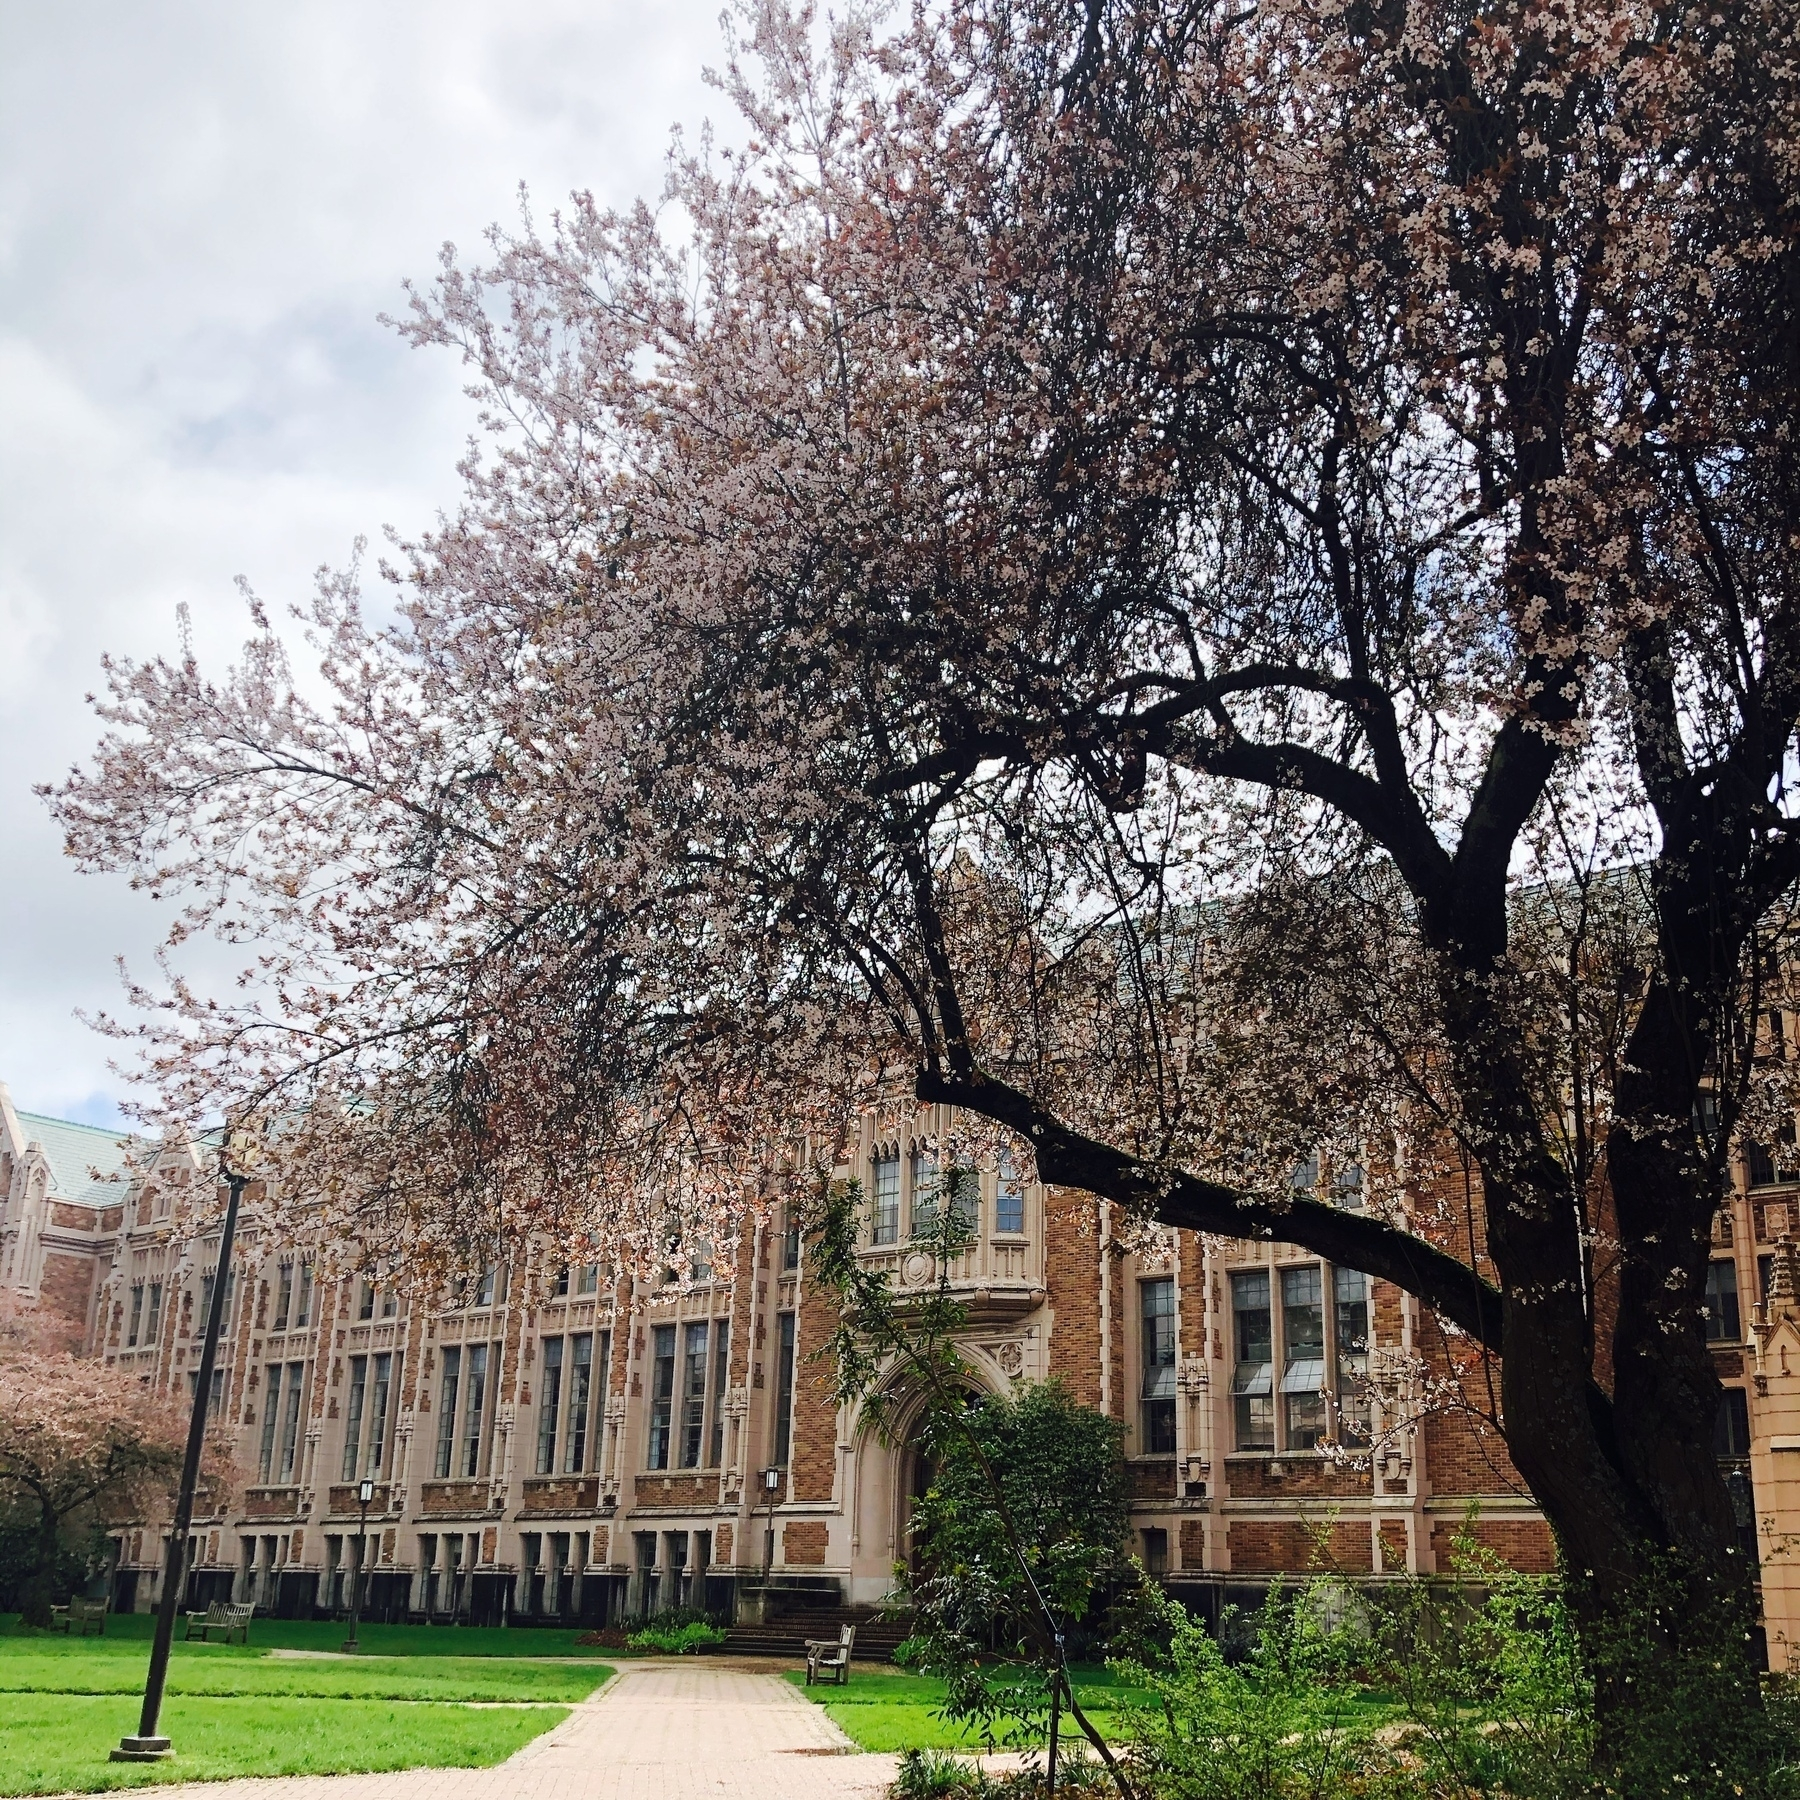 An old brick academic building with a blooming japanese cherry tree out front